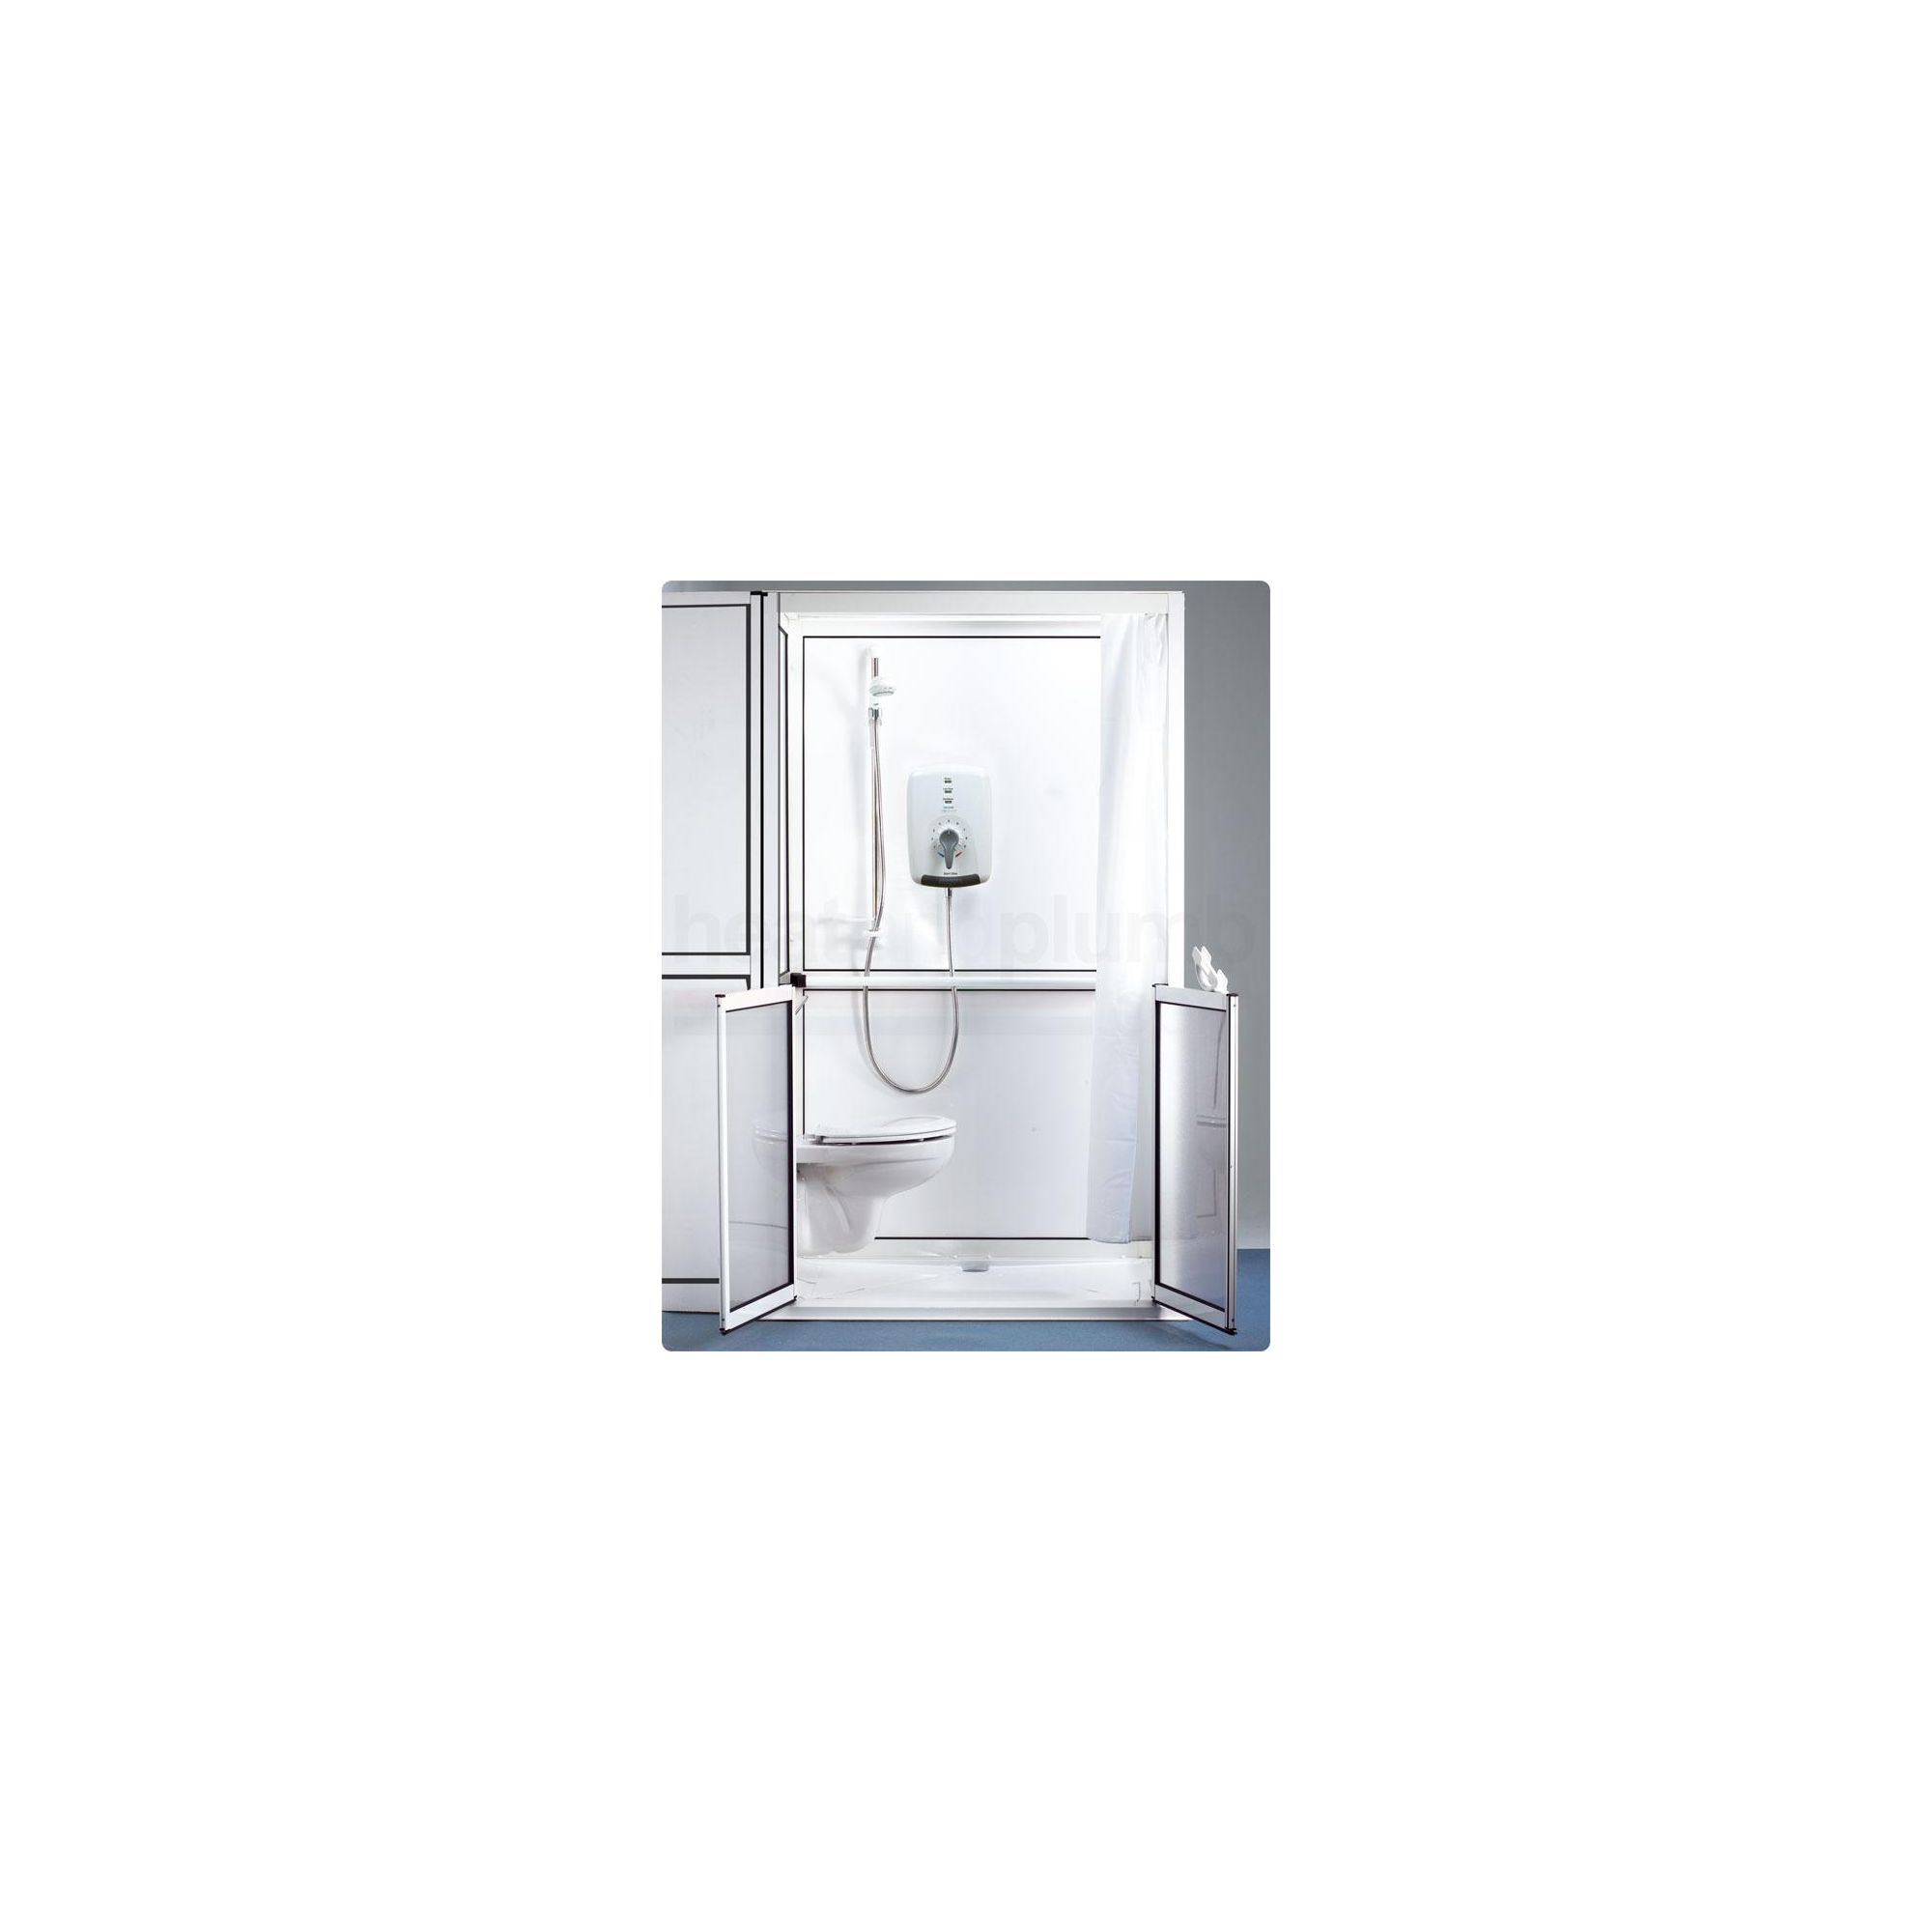 AKW ShowerLoo Shower Cubicle 1000mm x 1000mm at Tesco Direct